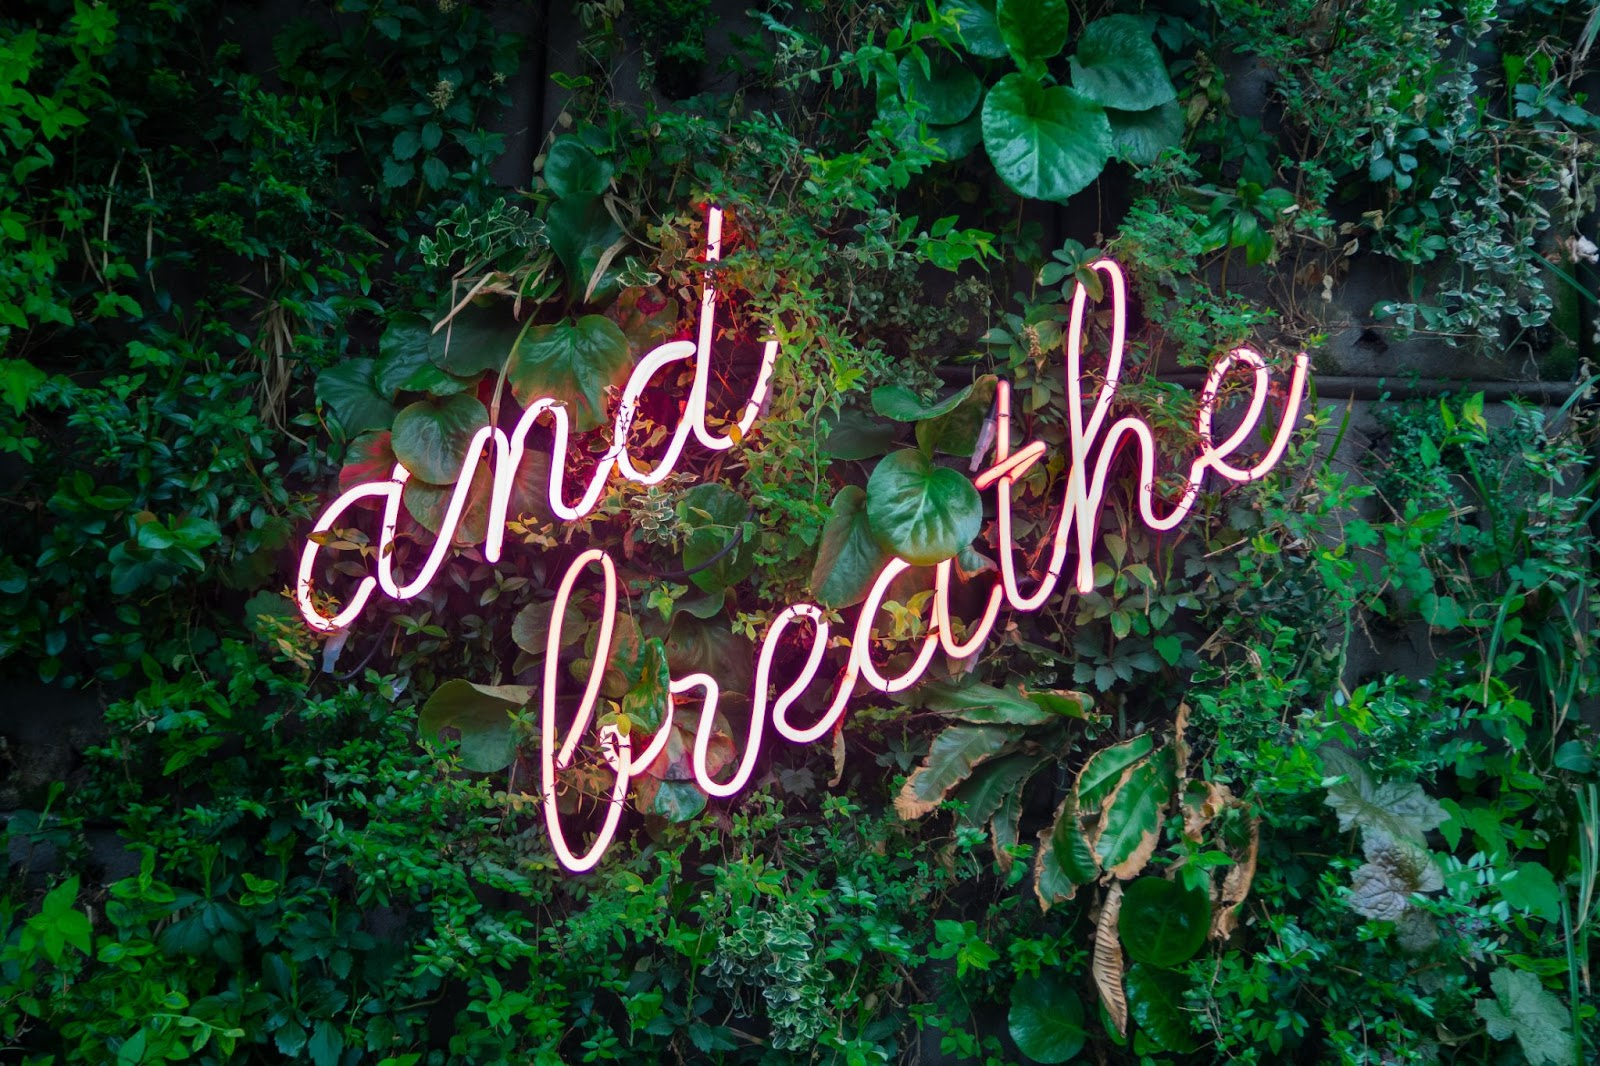 and breathe. Take time for yourself.